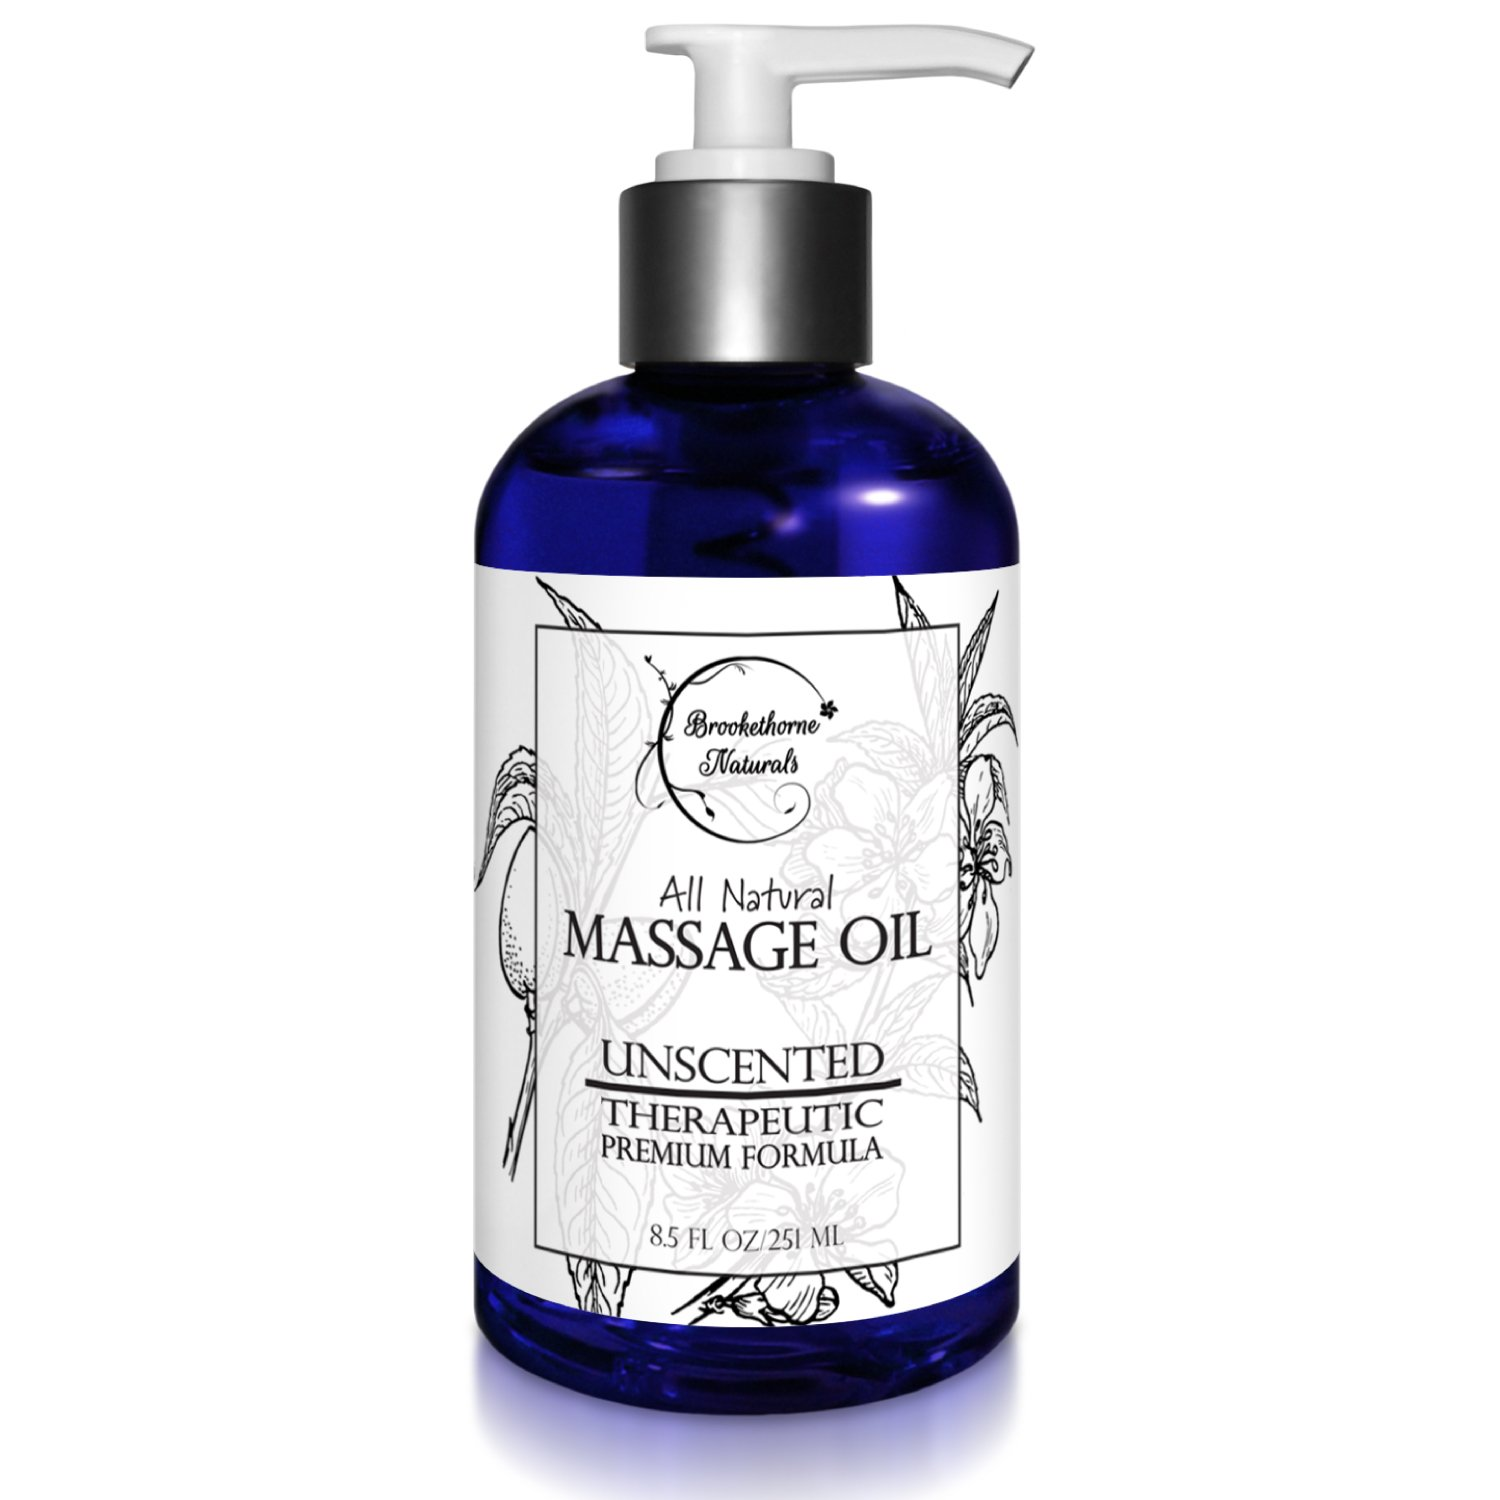 Almond Massage Oil – All Natural, Unscented Spa Quality Formula. Great for Massage Therapy, Body Massage & Therapeutic Massage – with Sweet Almond, Jojoba & Grapeseed Oils - 8.5oz